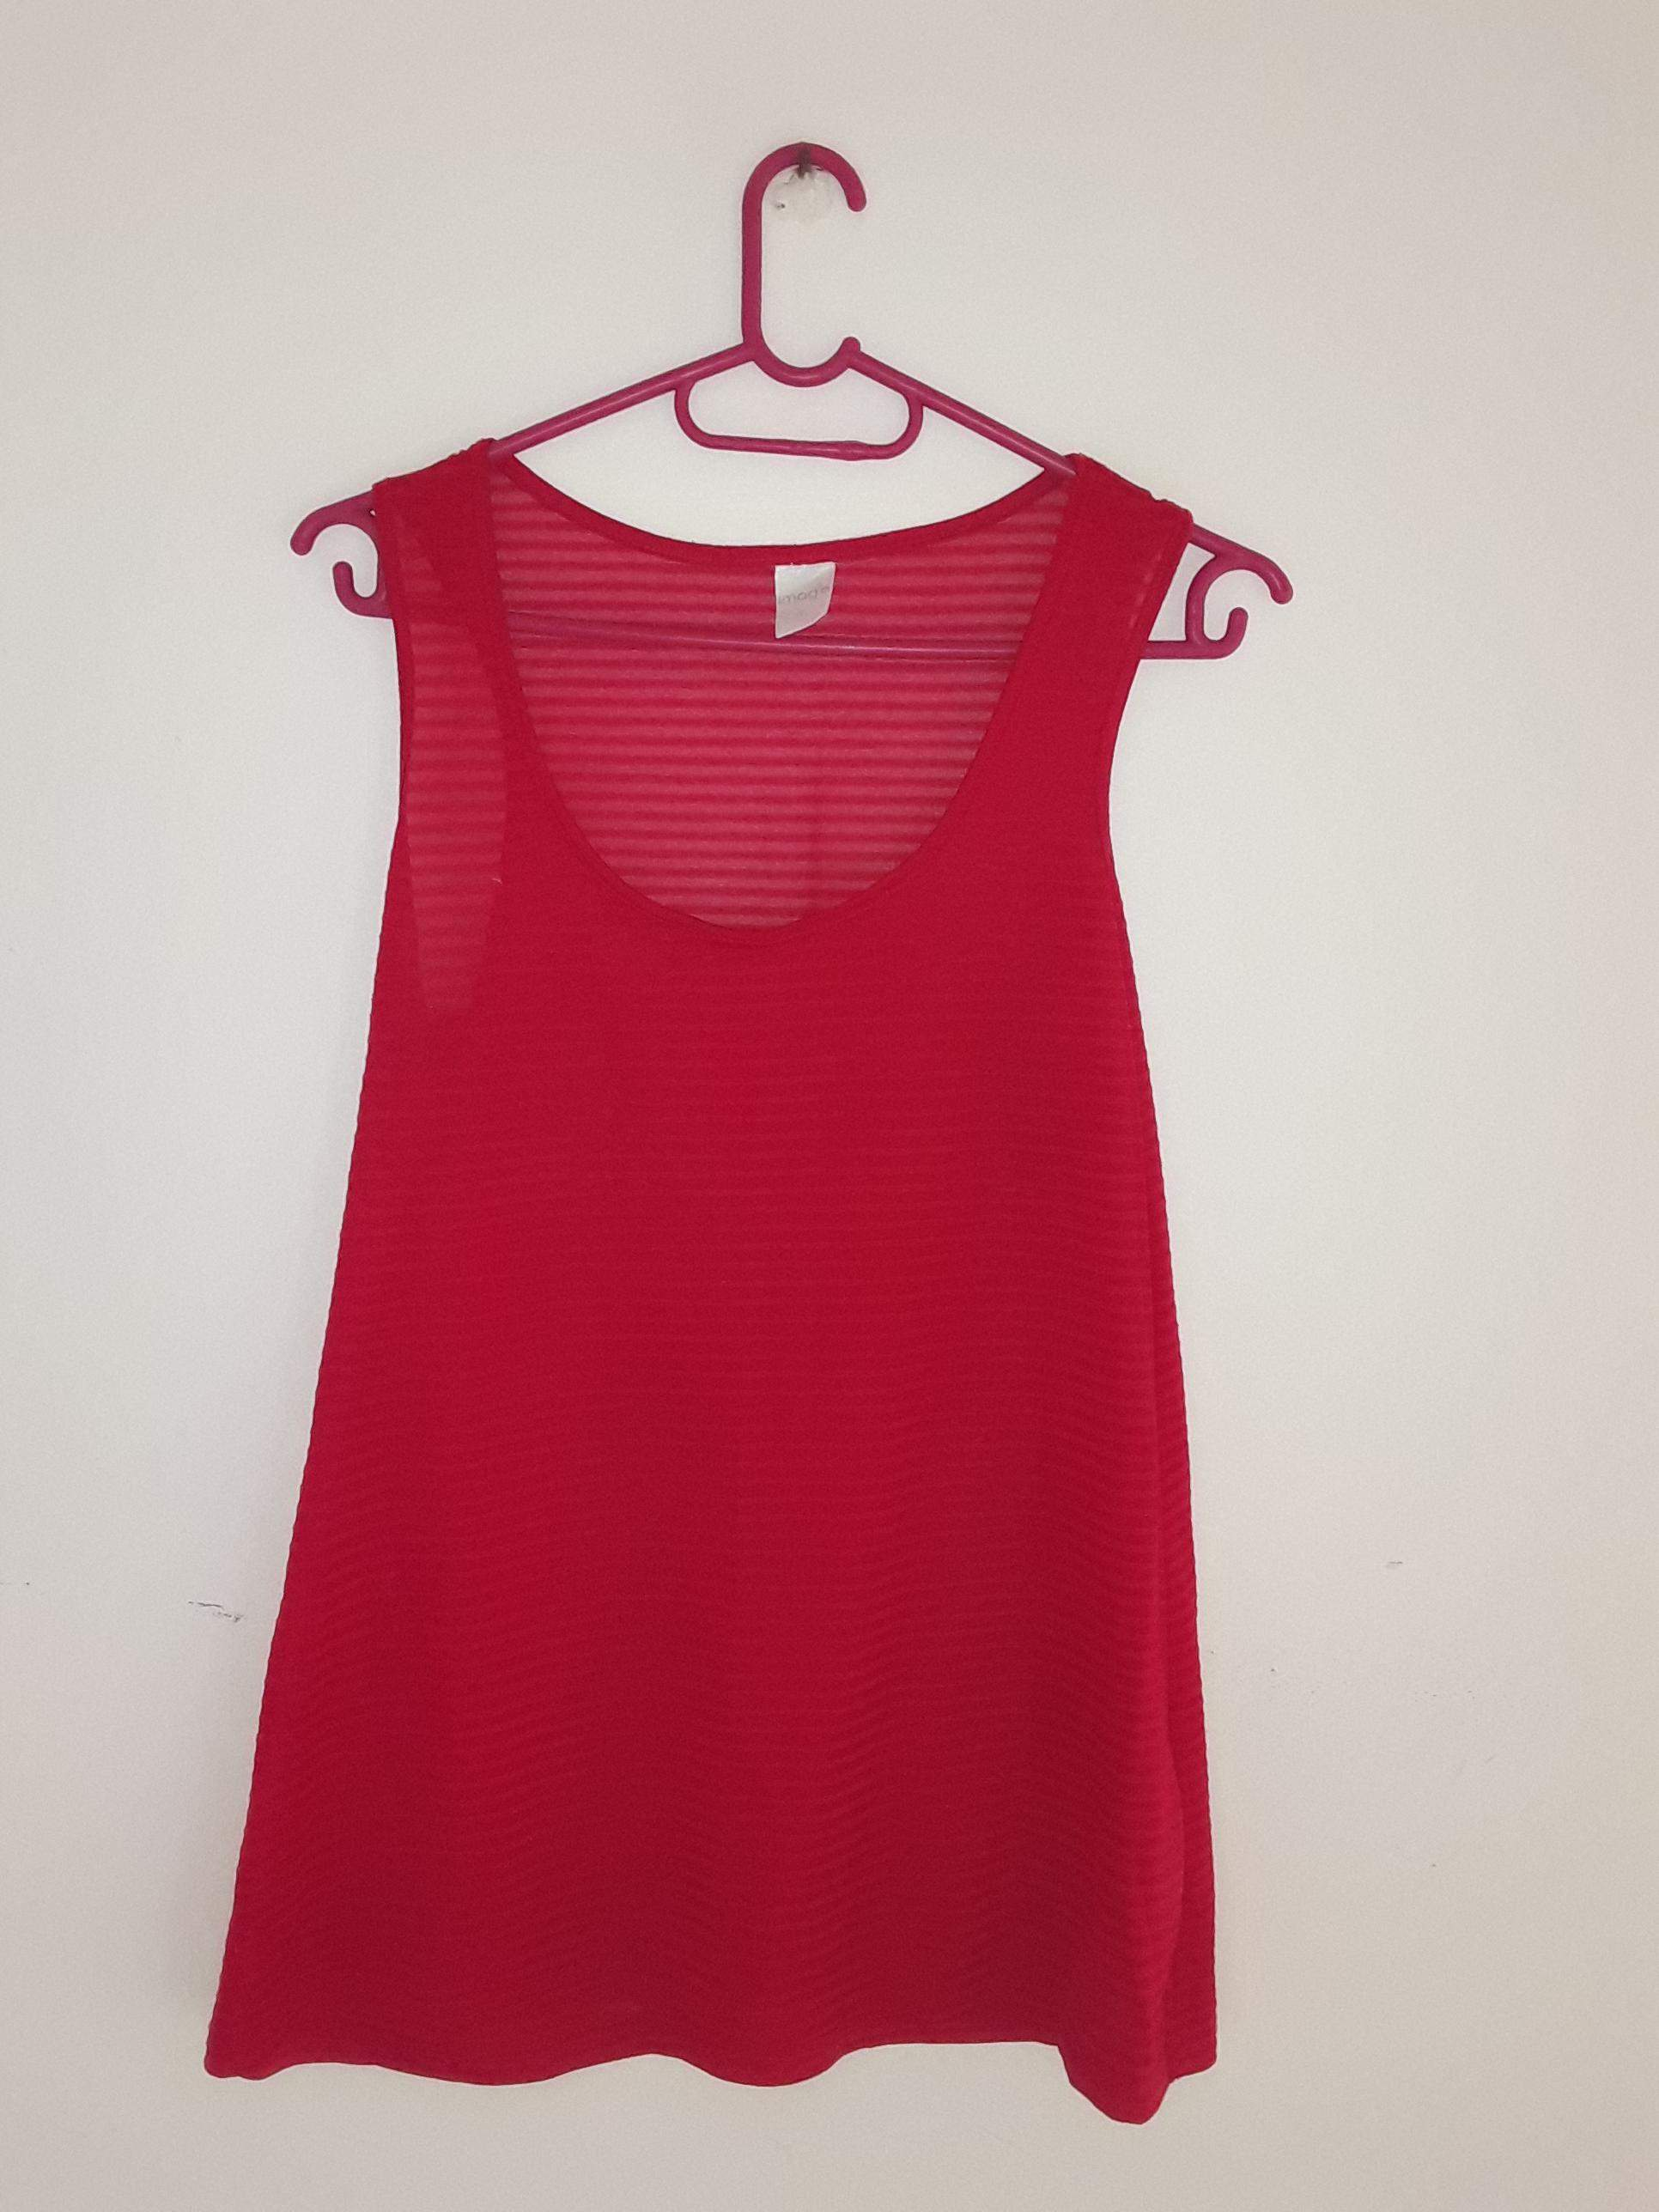 PnP Clothing Red Loose Shirt and Top Combo